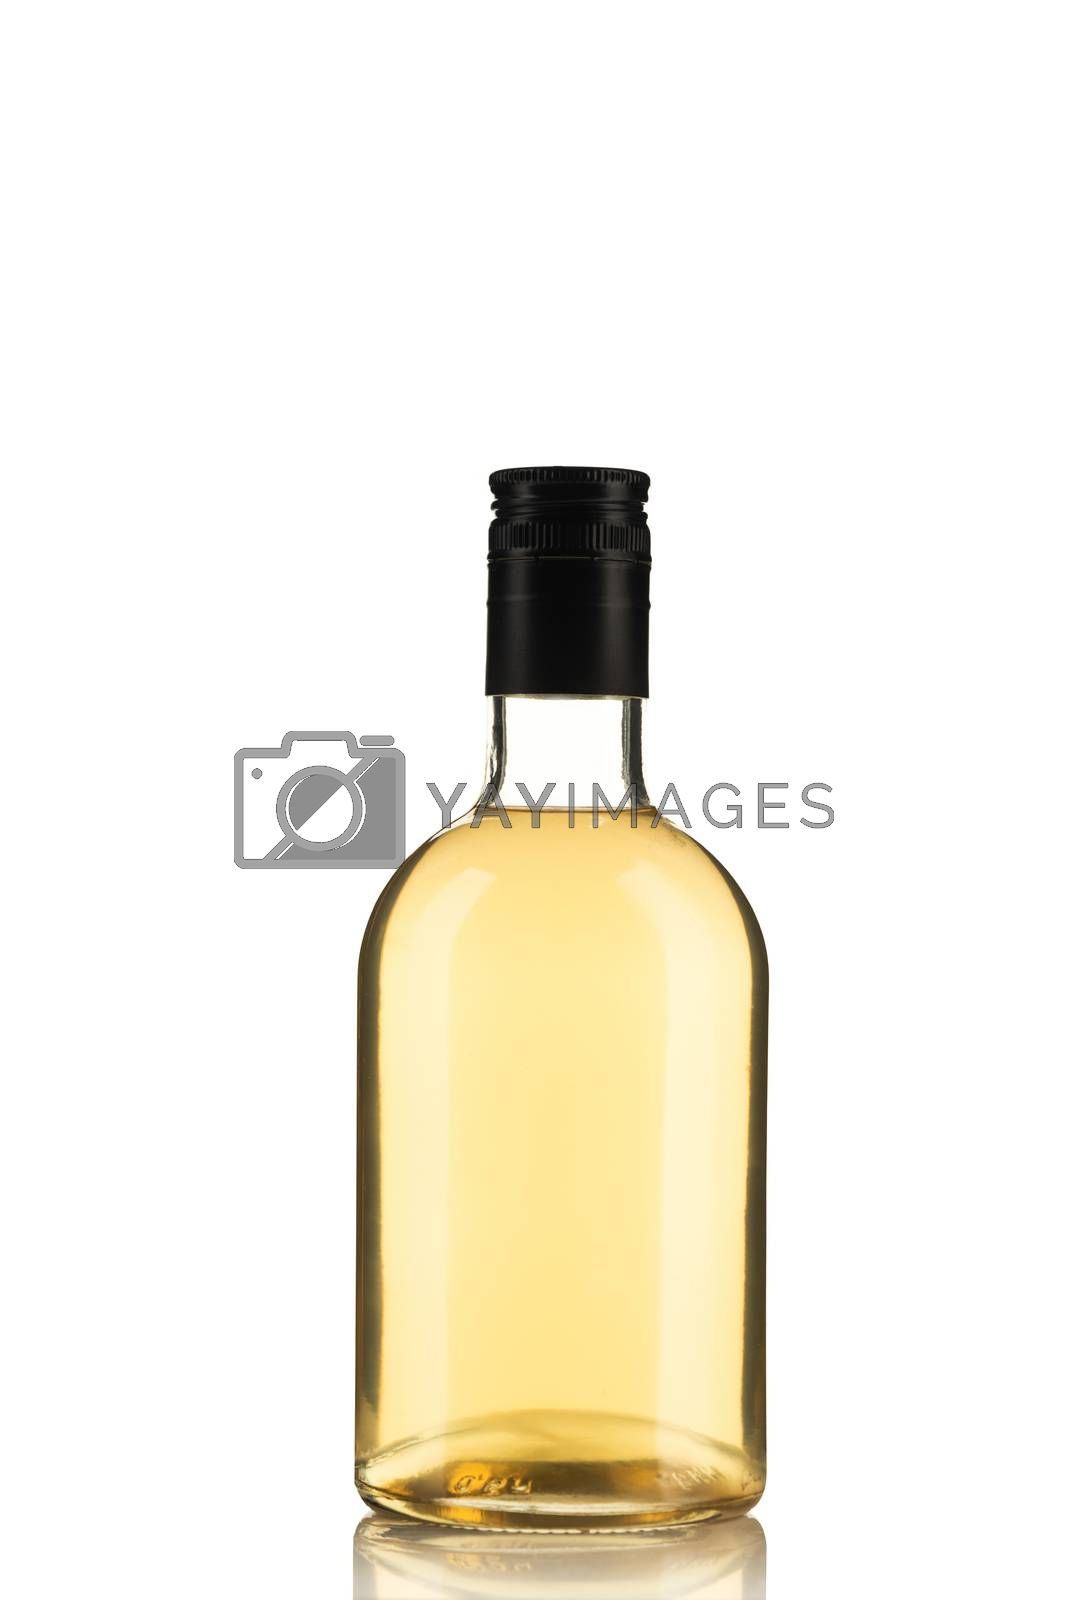 Bottle of Herbal Tincture or Alcohol Liqour Isolated on White Ba by merc67